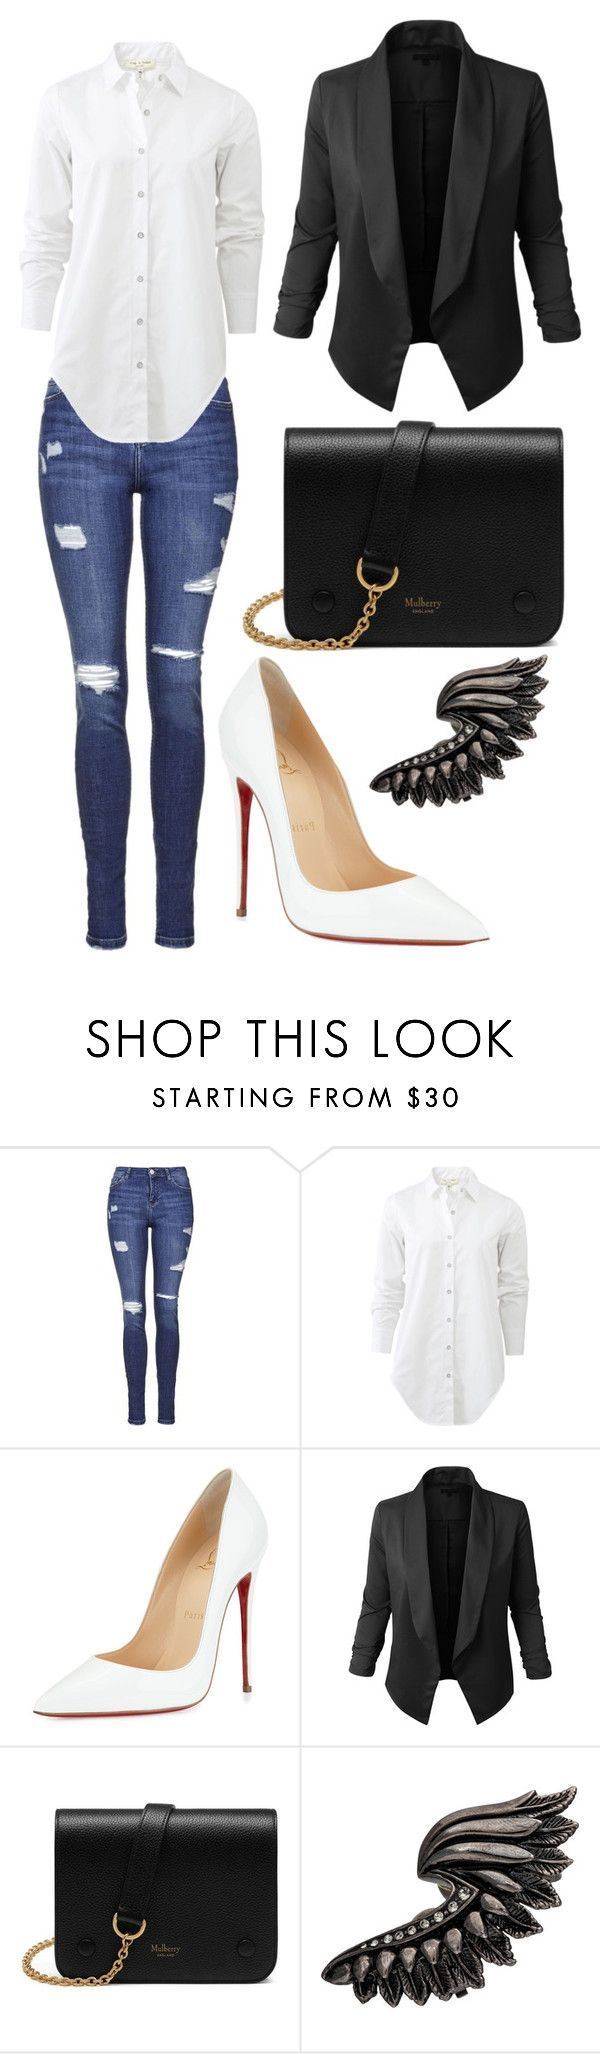 """""""Jusiieiiwiw"""" by kidrauhlss ❤ liked on Polyvore featuring Topshop, rag & bone, Christian Louboutin, LE3NO, Mulberry and Roberto Cavalli"""